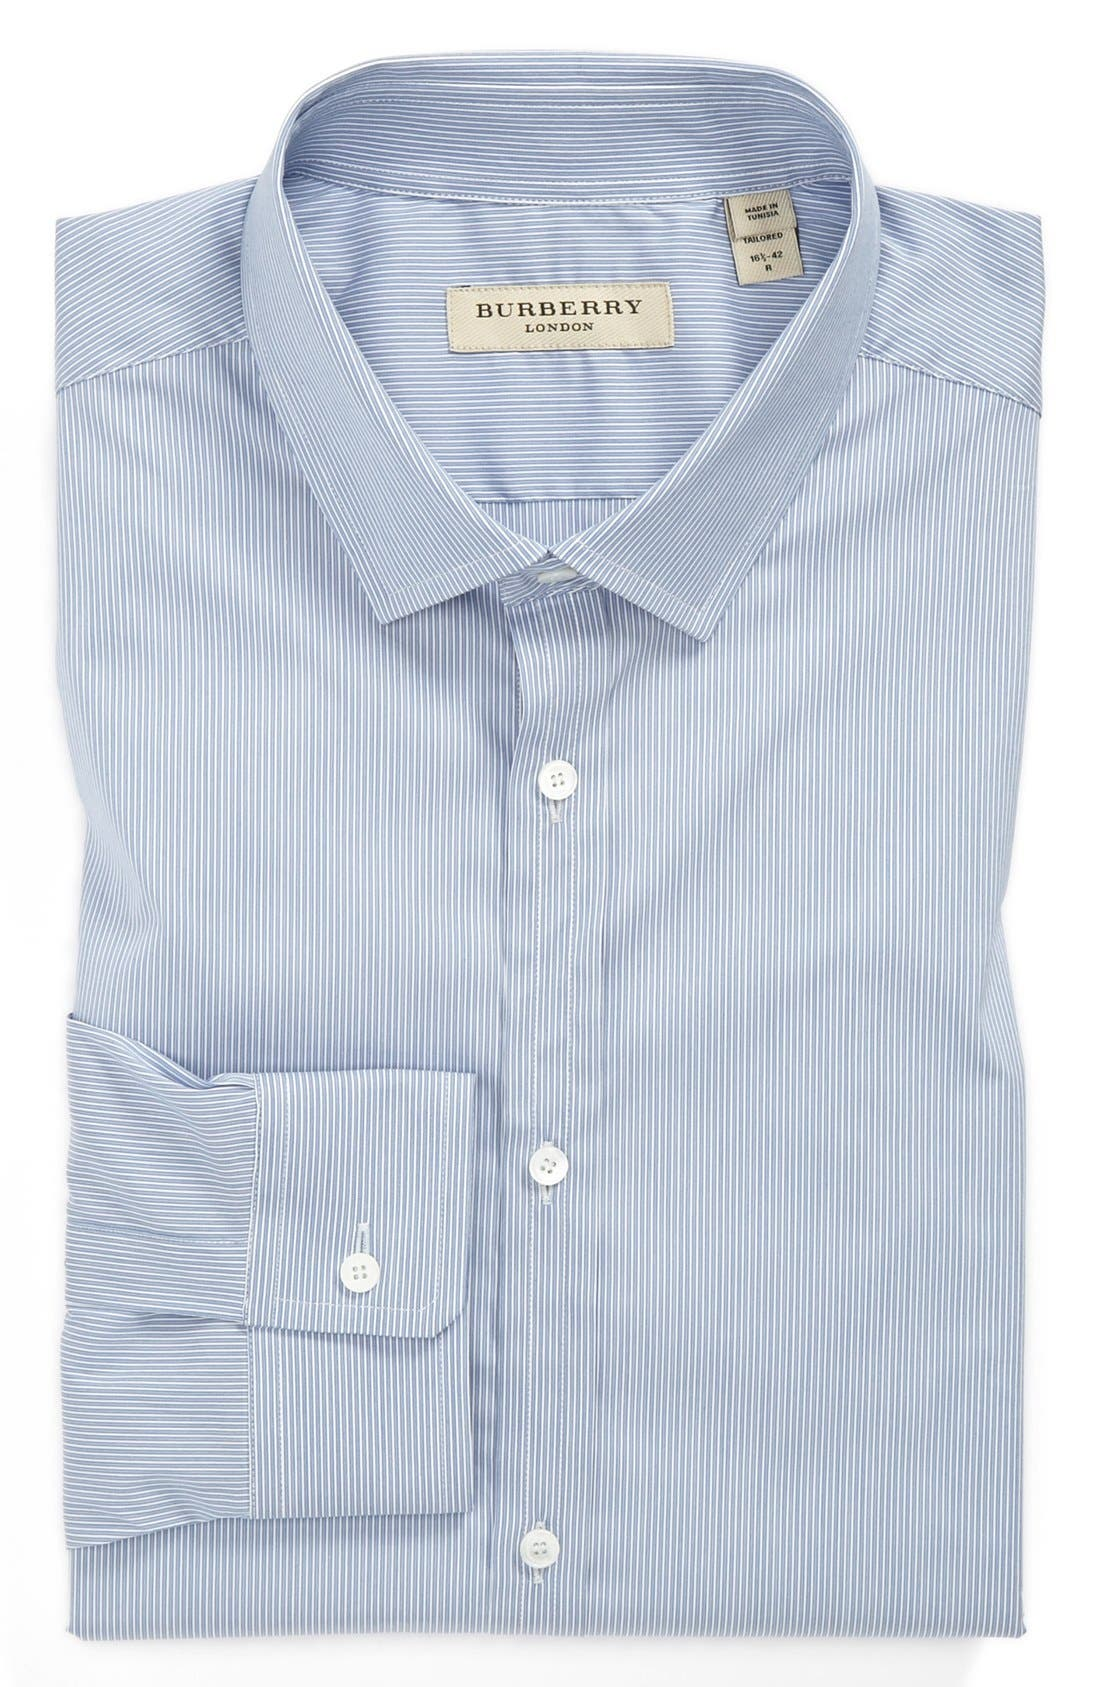 Alternate Image 1 Selected - Burberry London Stripe Tailored Fit Dress Shirt